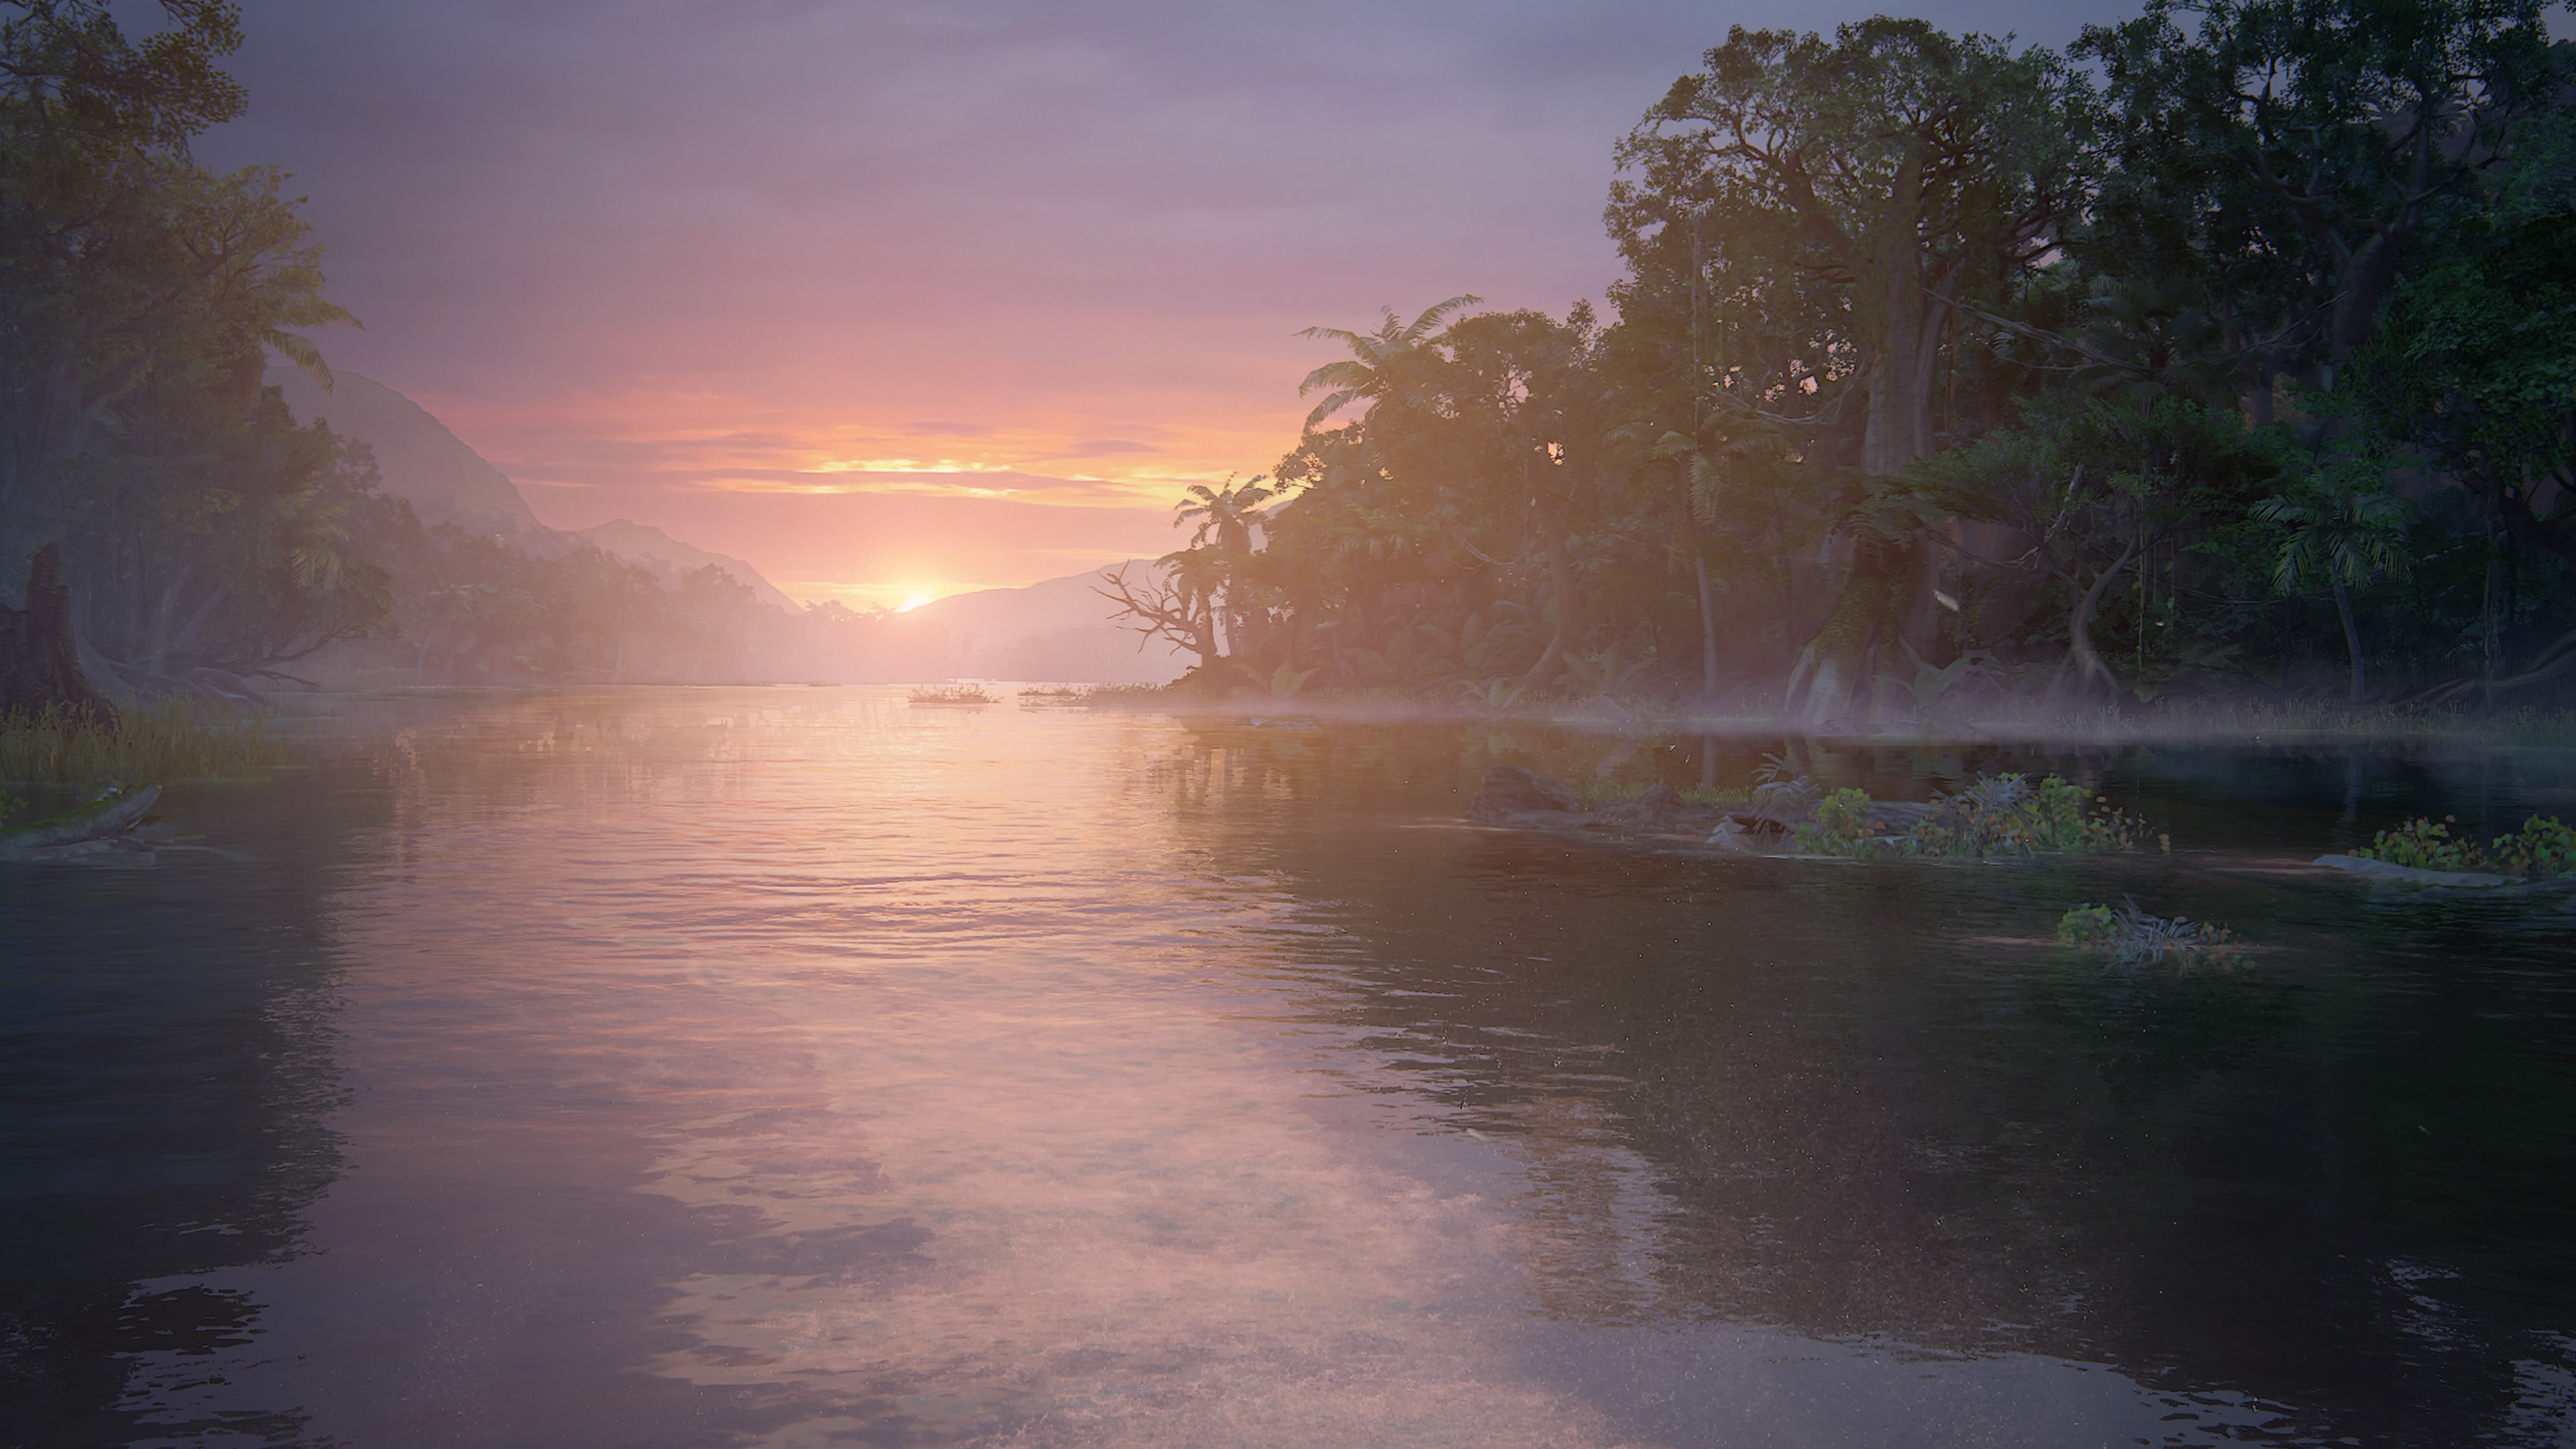 Pubg Ps4 Pro Hdr: Uncharted: The Lost Legacy : Nos Images En 4K HDR